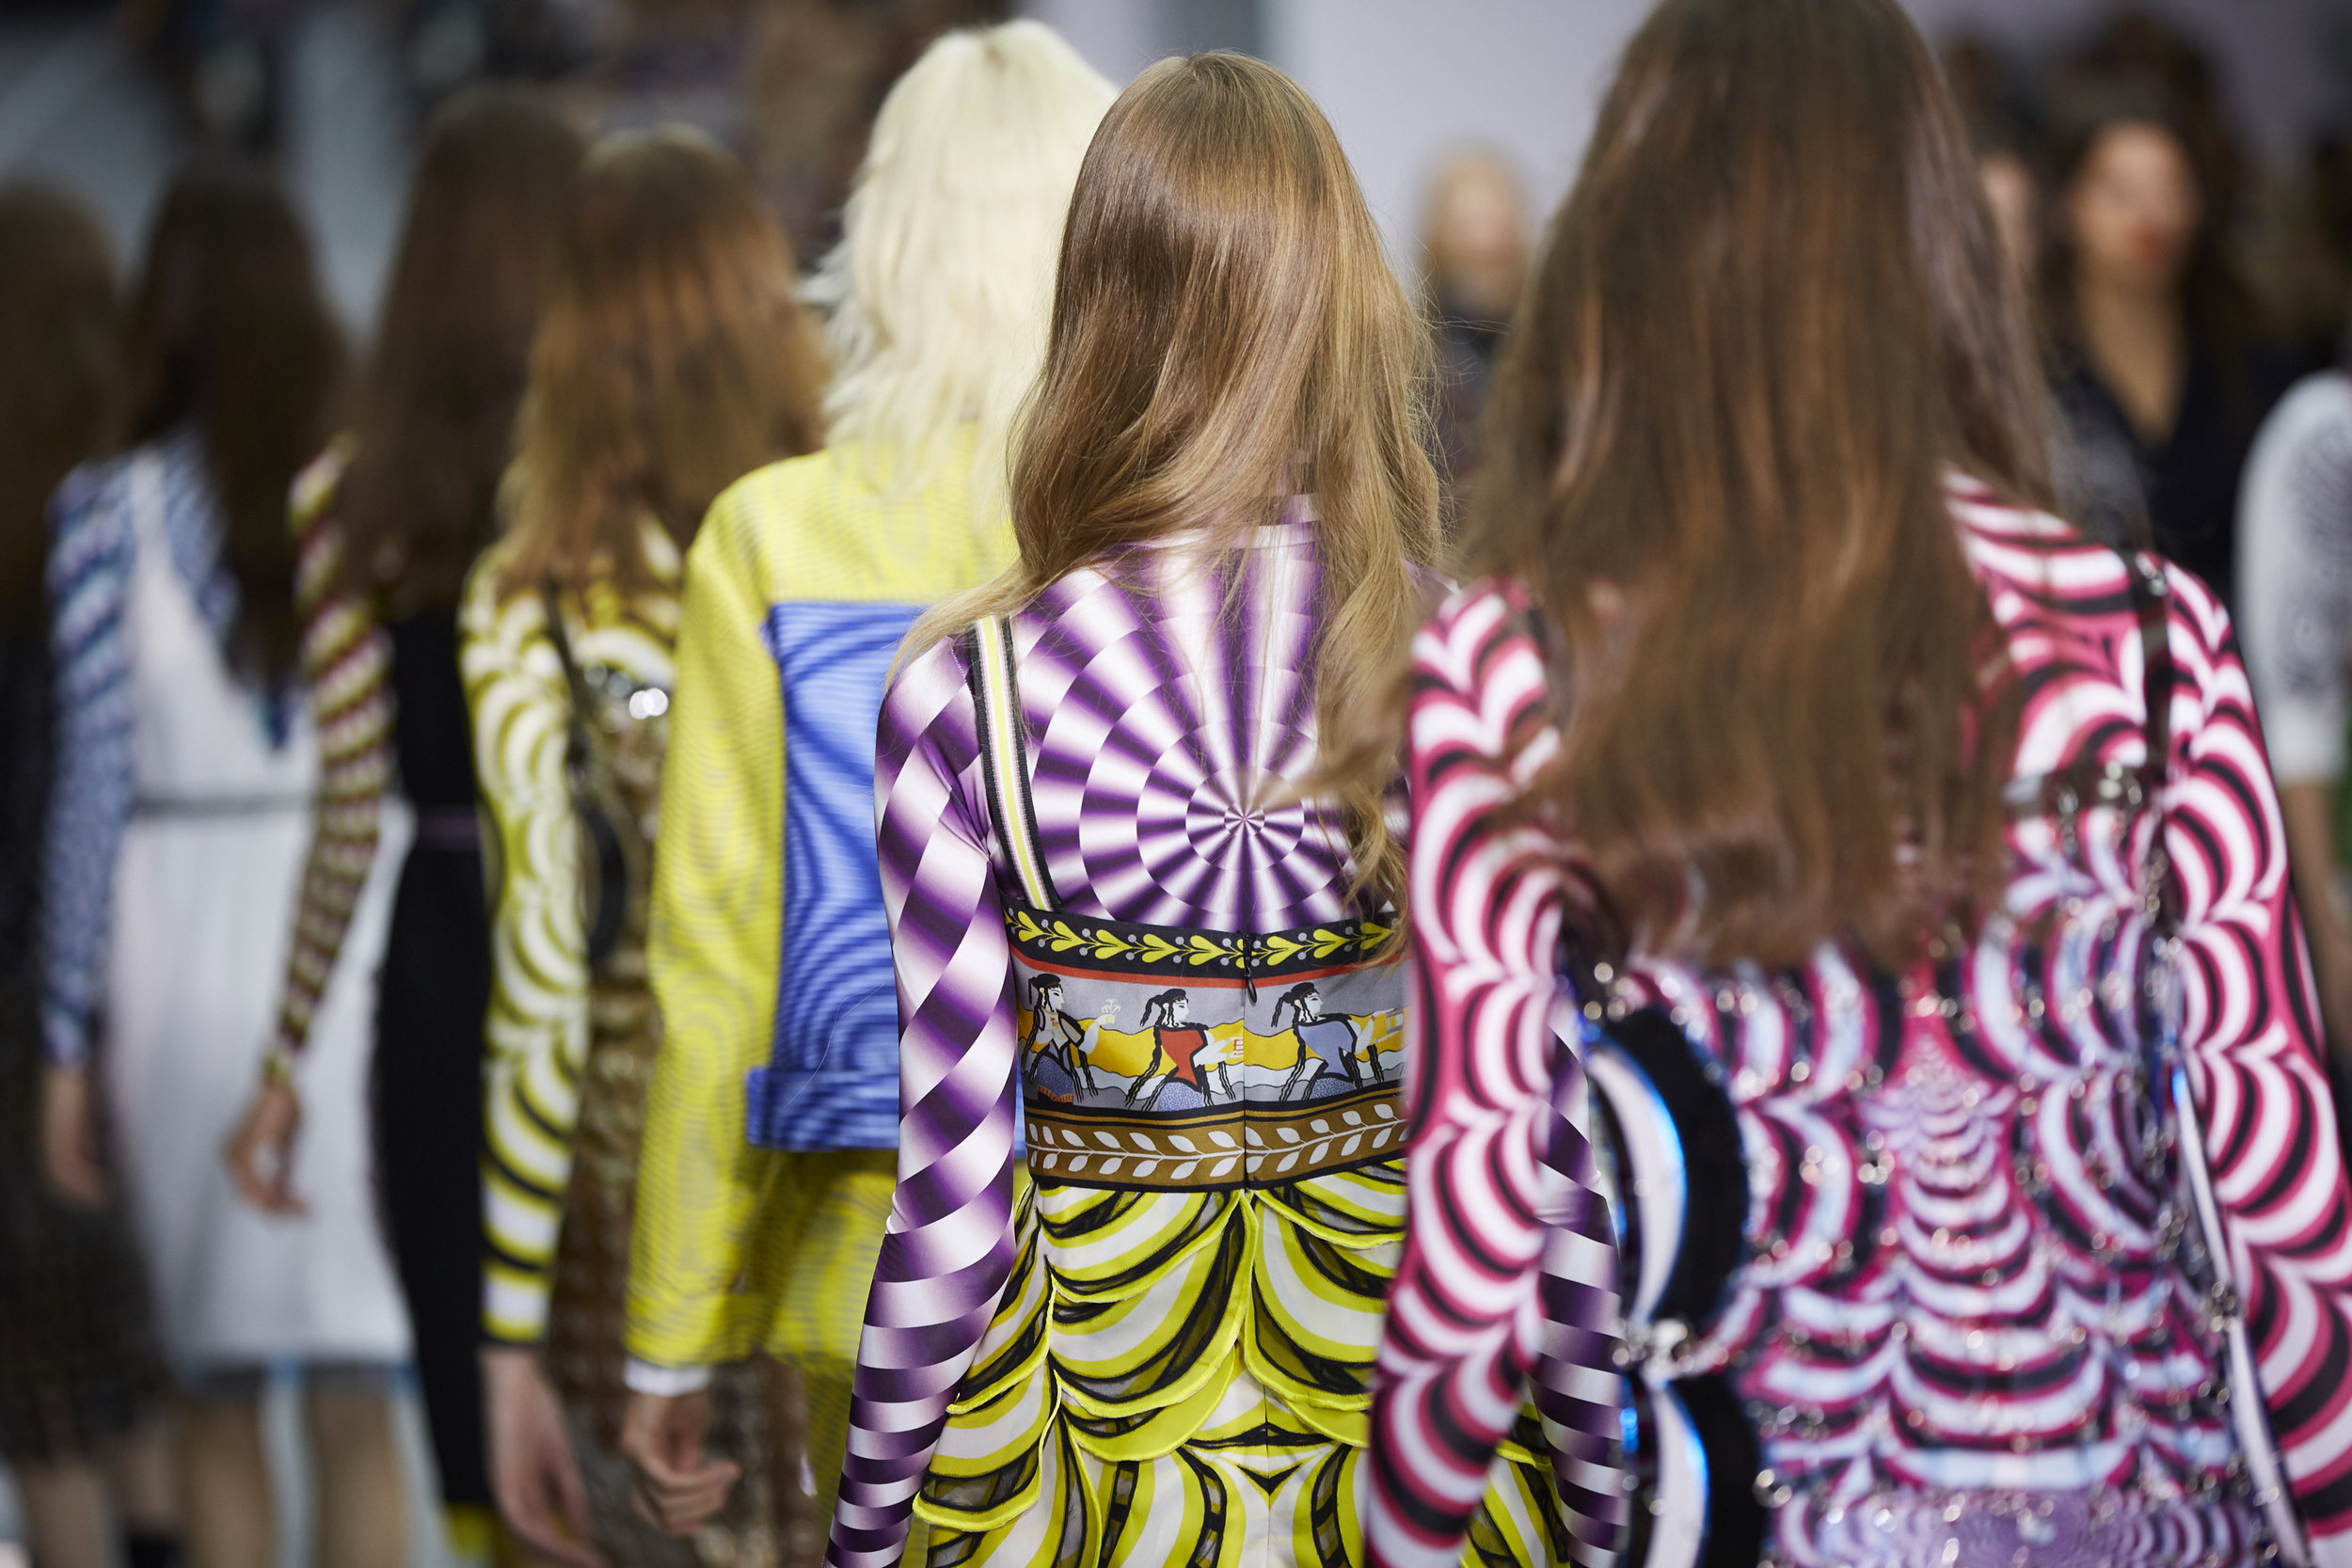 ss-2017_london-fashion-week_GB_0030_mary-katrantzou_68213.jpg